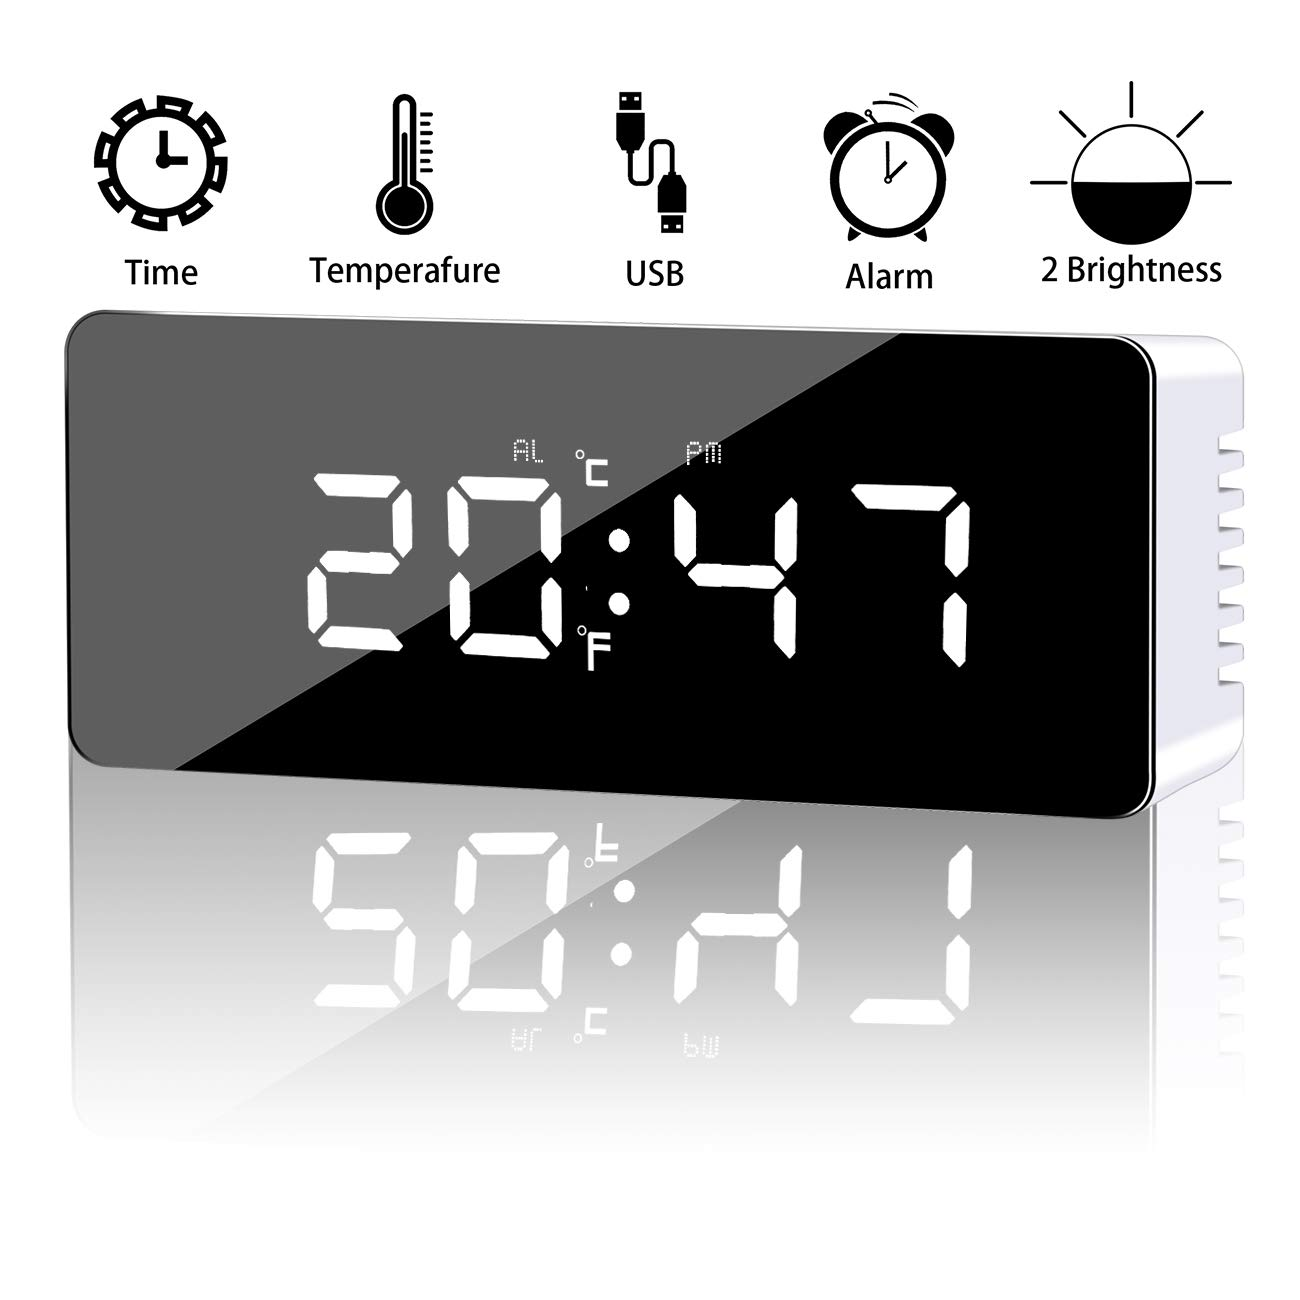 HandyHoffice Alarm Clock, Digital Alarm Clock with Large LED Display, 2 Level Brightness, Snooze Function, Mirror Surface,Time and Temperature Mode, Powered by USB Charging Port or Battery